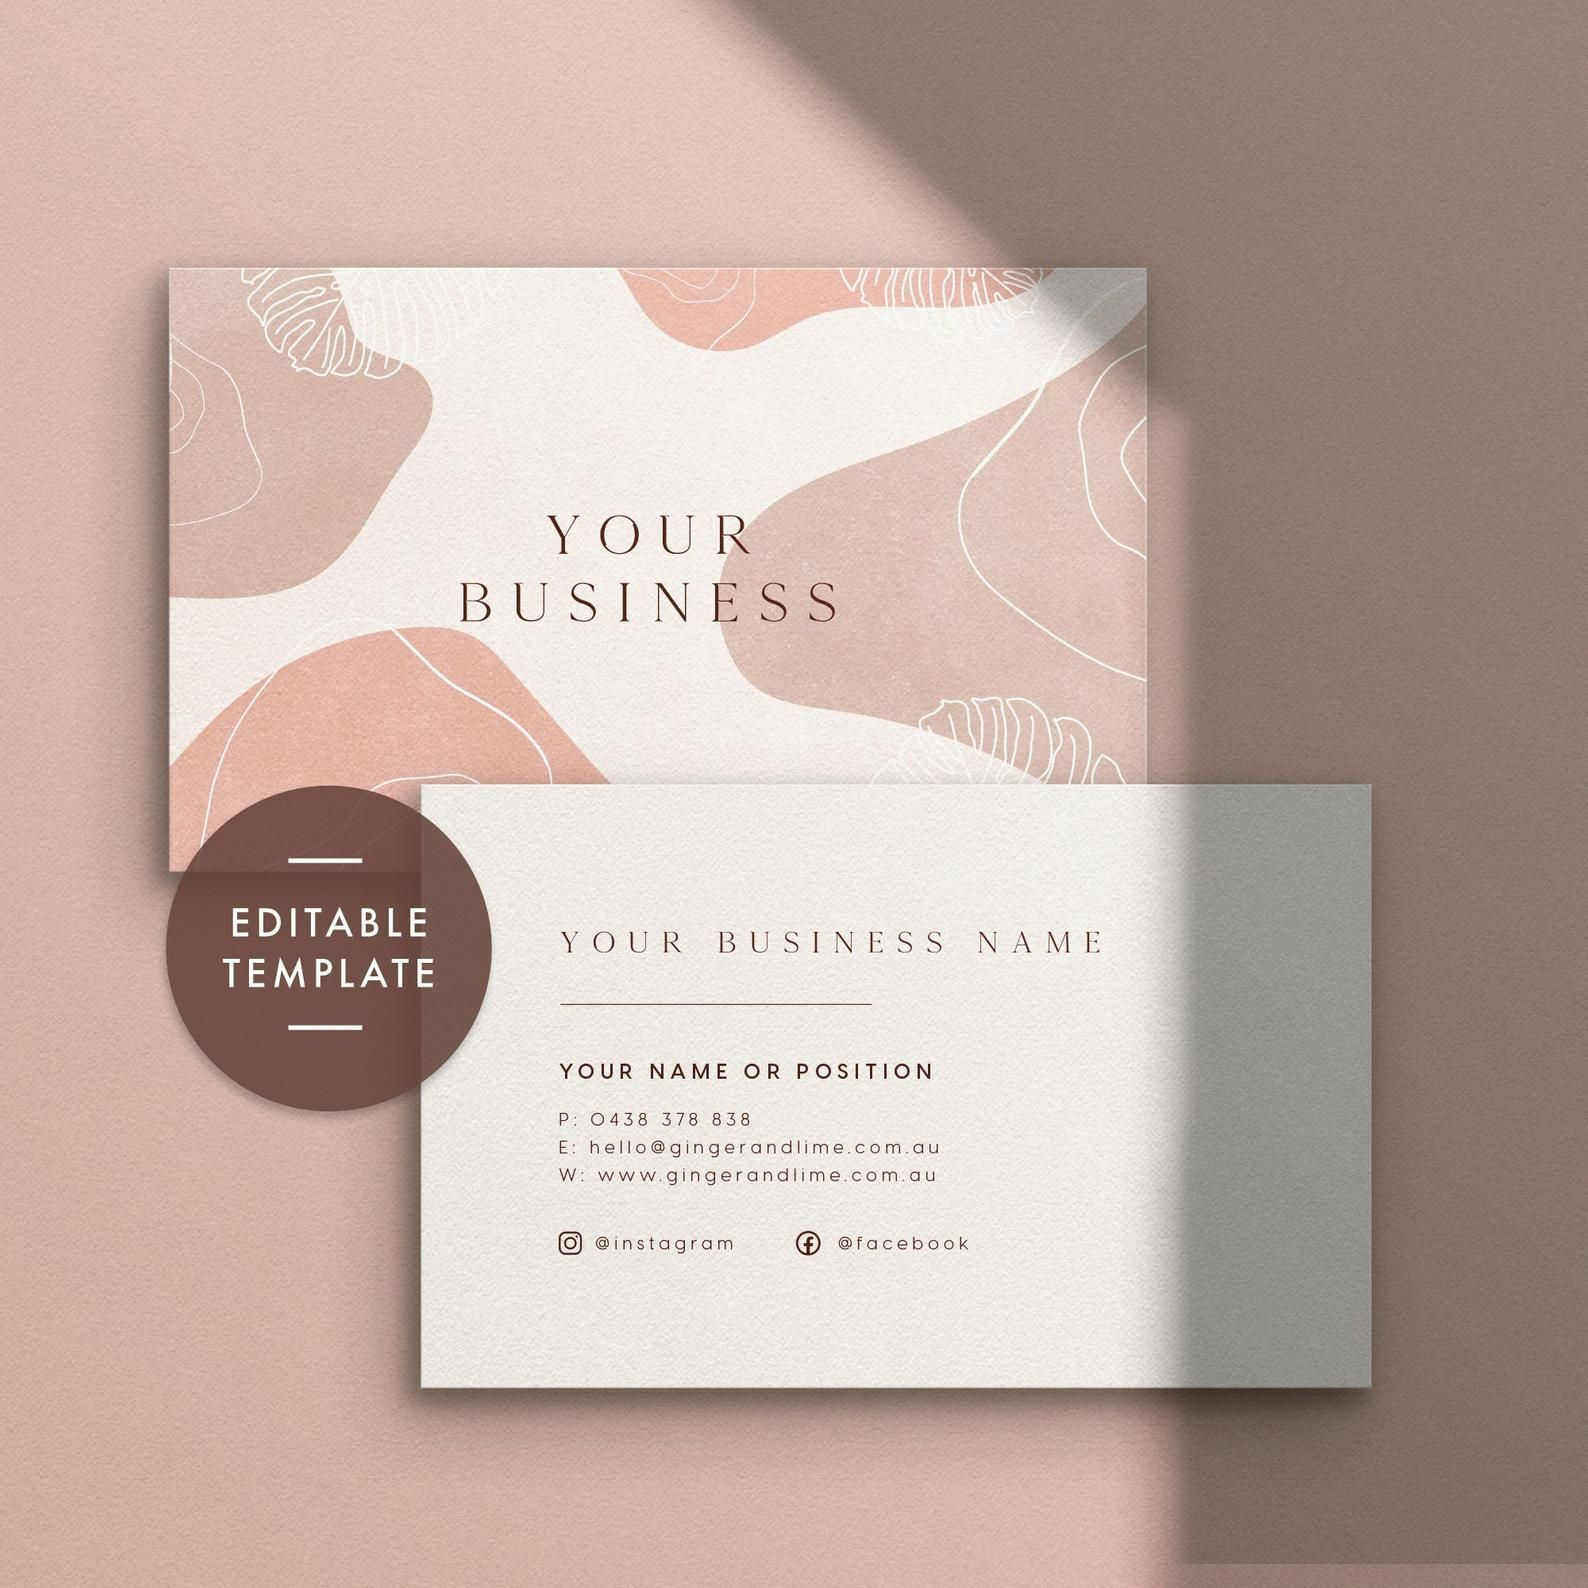 Business Card Template Instant Download Personalized Business Card Premade Business Card Template Business Cards Business Card Design Pretty Business Cards Business Cards Layout Business Stationery